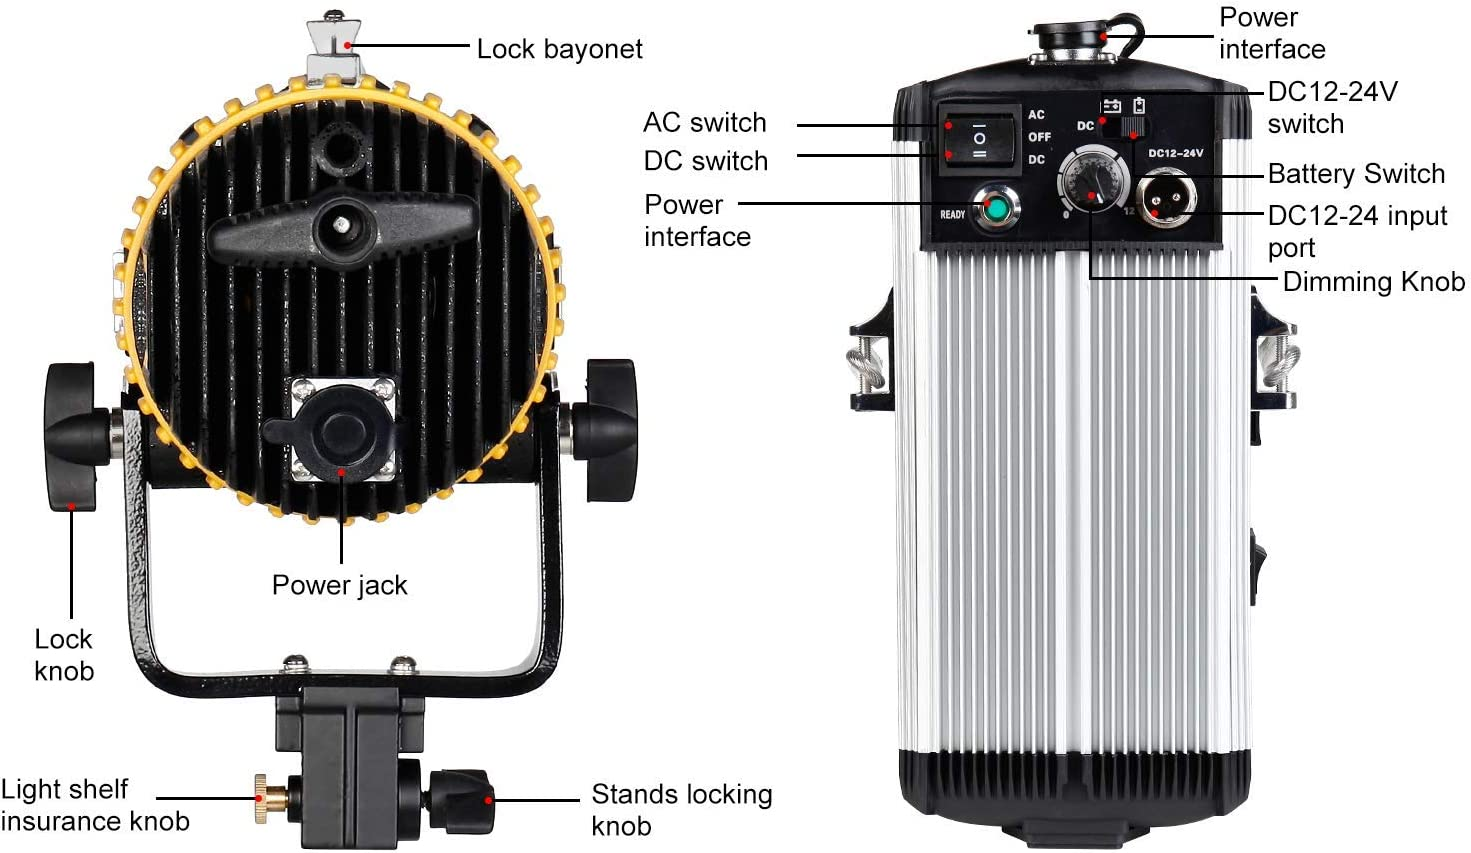 ASHANKS led Fresnel Spotlight 150W Dimmable Studio Fresnel Light 3200-5500K with Wireless Remote Control for Camera Photo and Studio Video